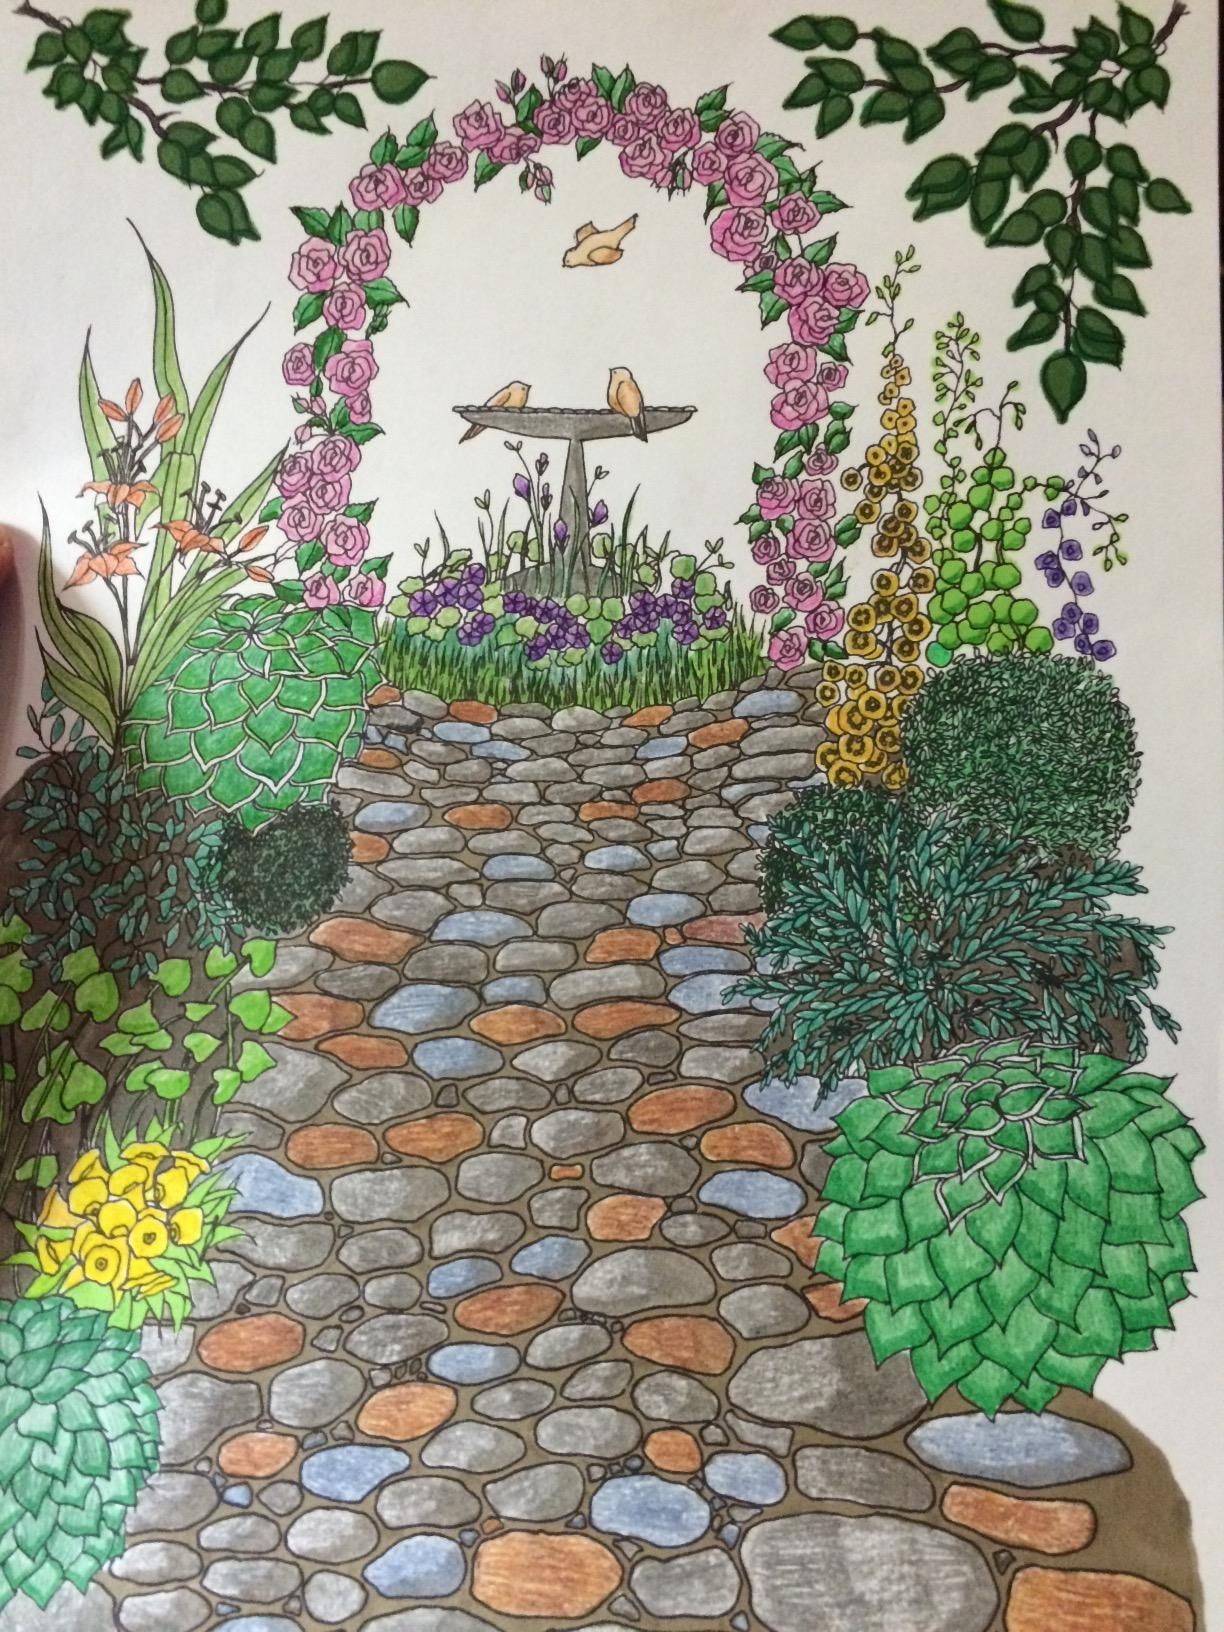 Whimsical designs coloring book - Creative Haven Whimsical Gardens Coloring Book Adult Coloring Alexandra Cowell 9780486796758